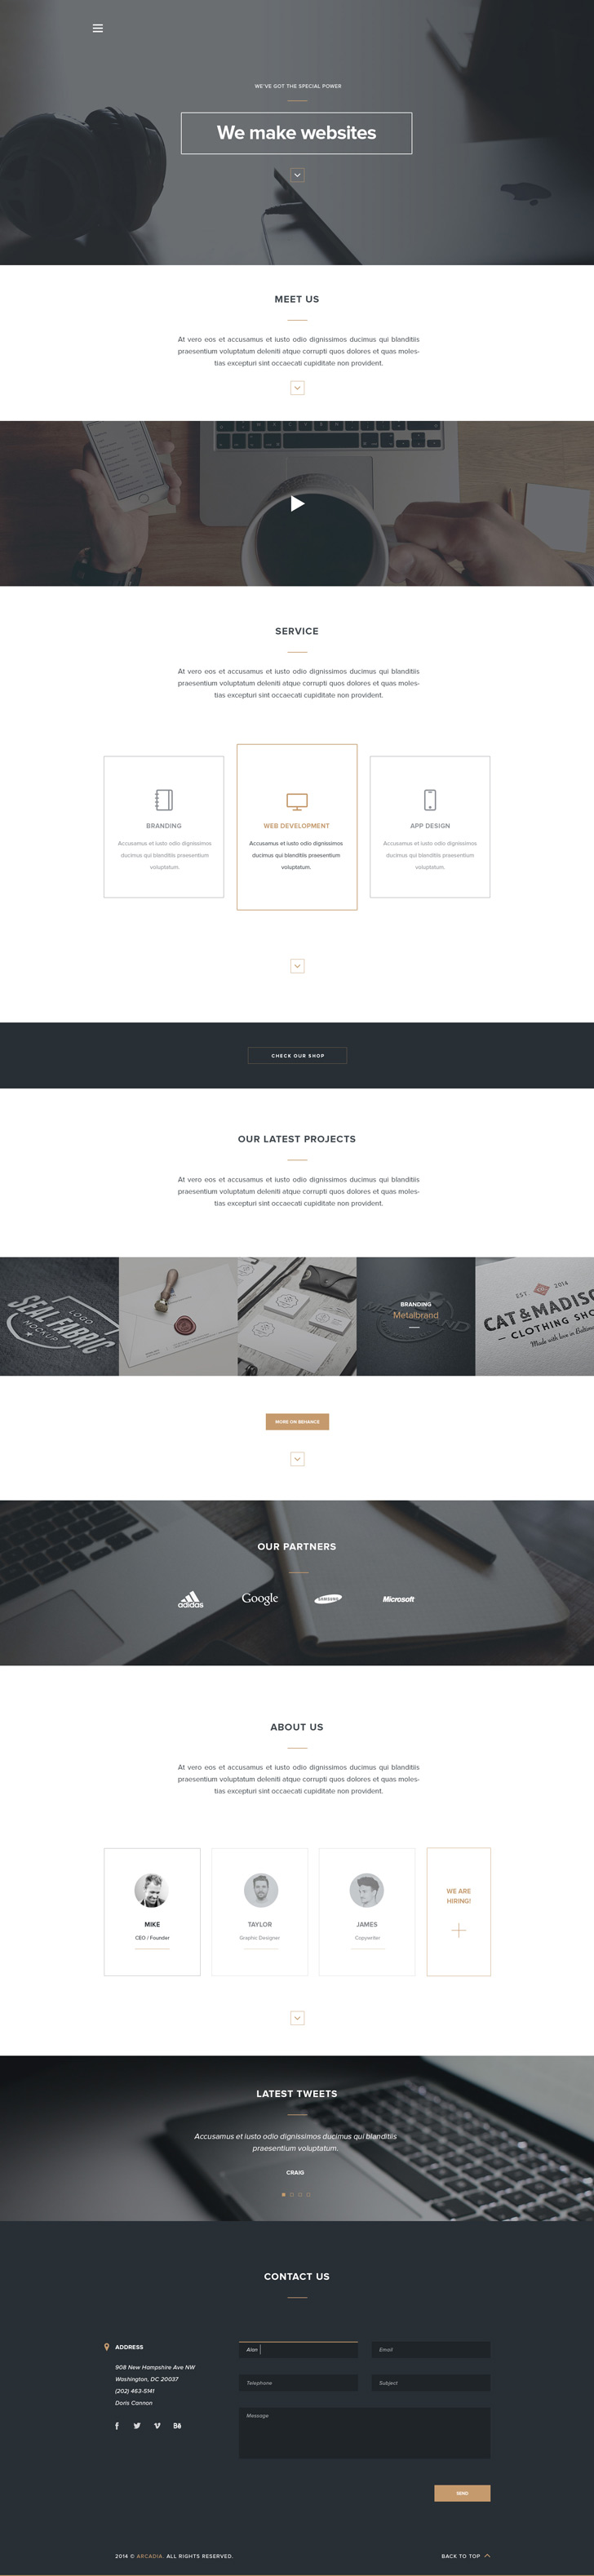 arcadia free psd template landing page